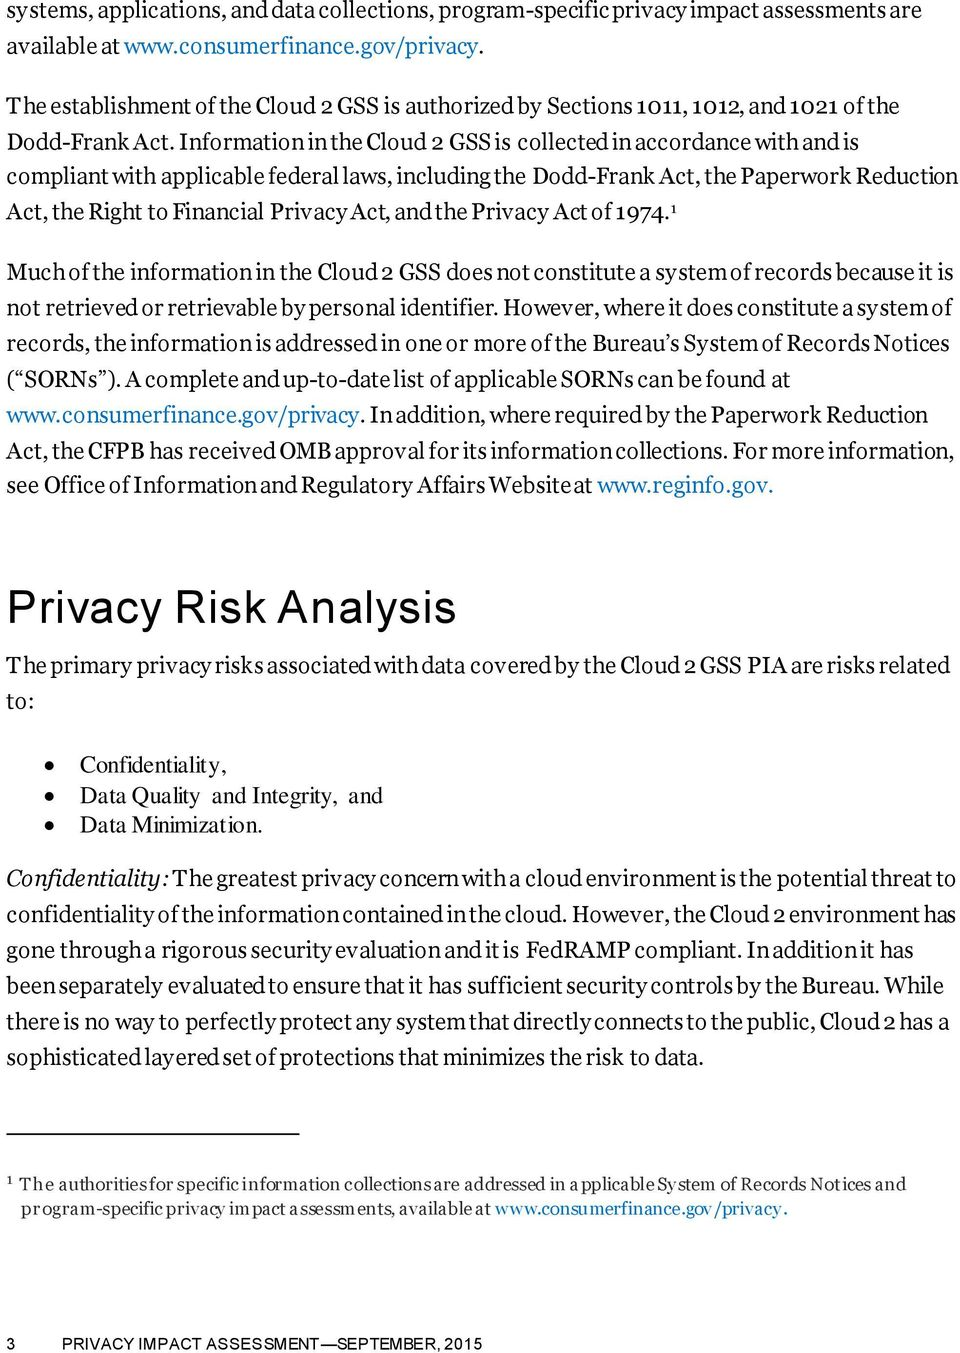 Information in the Cloud 2 GSS is collected in accordance with and is compliant with applicable federal laws, including the Dodd-Frank Act, the Paperwork Reduction Act, the Right to Financial Privacy